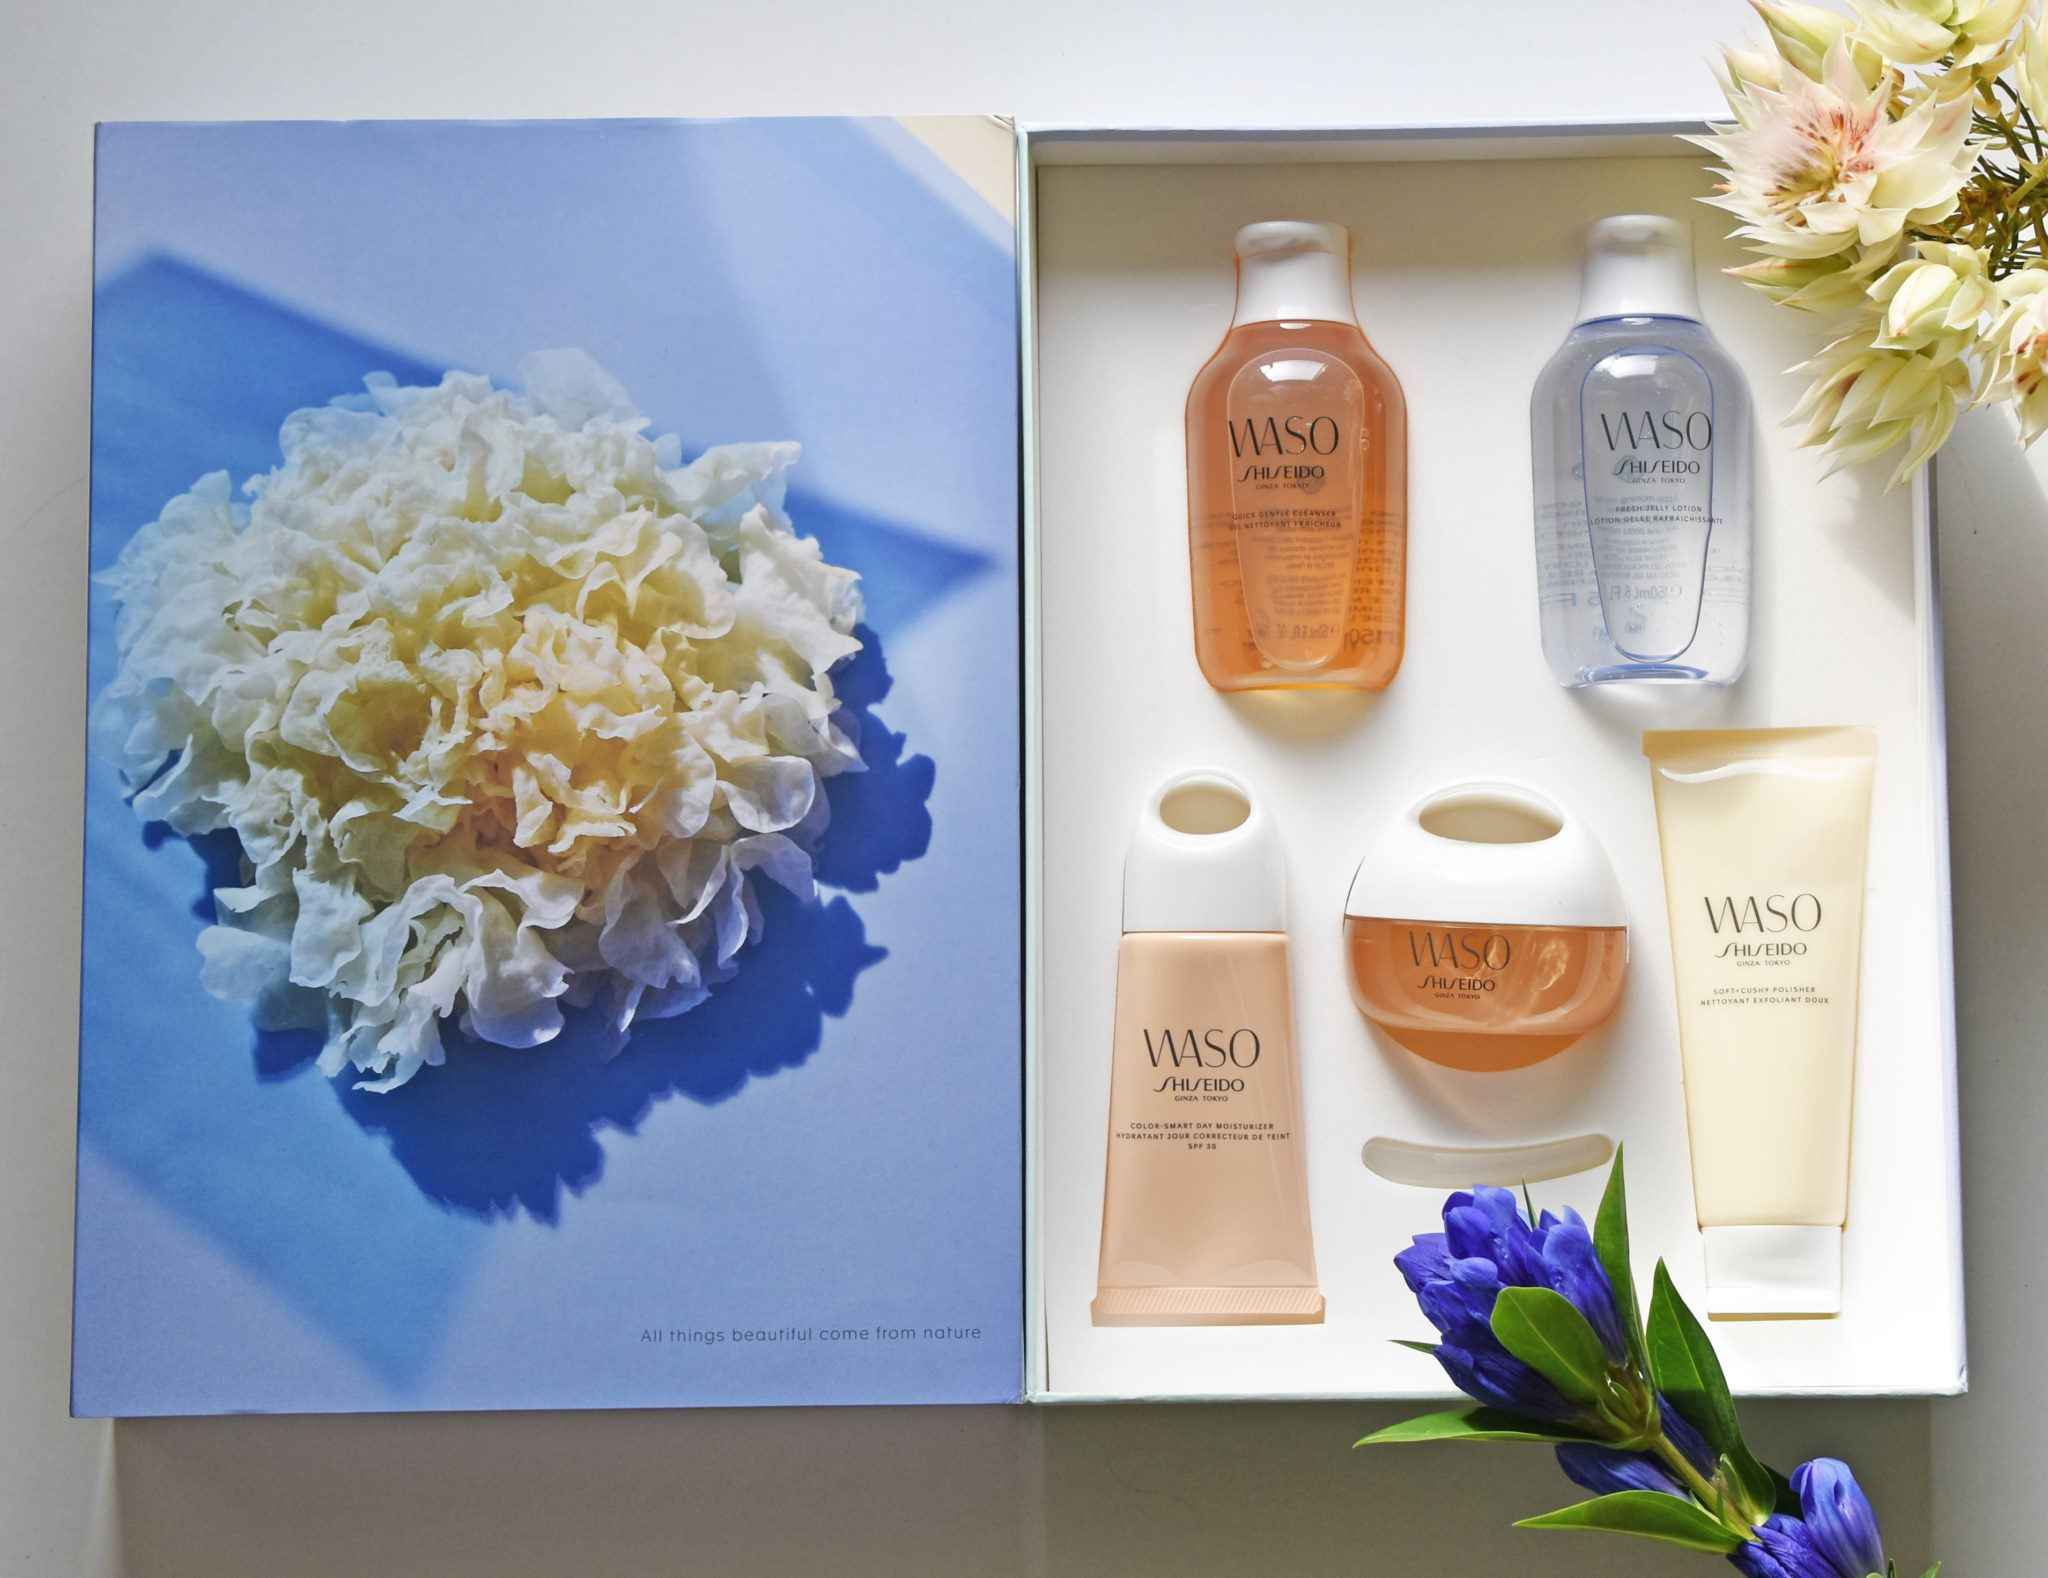 WASO Shiseido Review